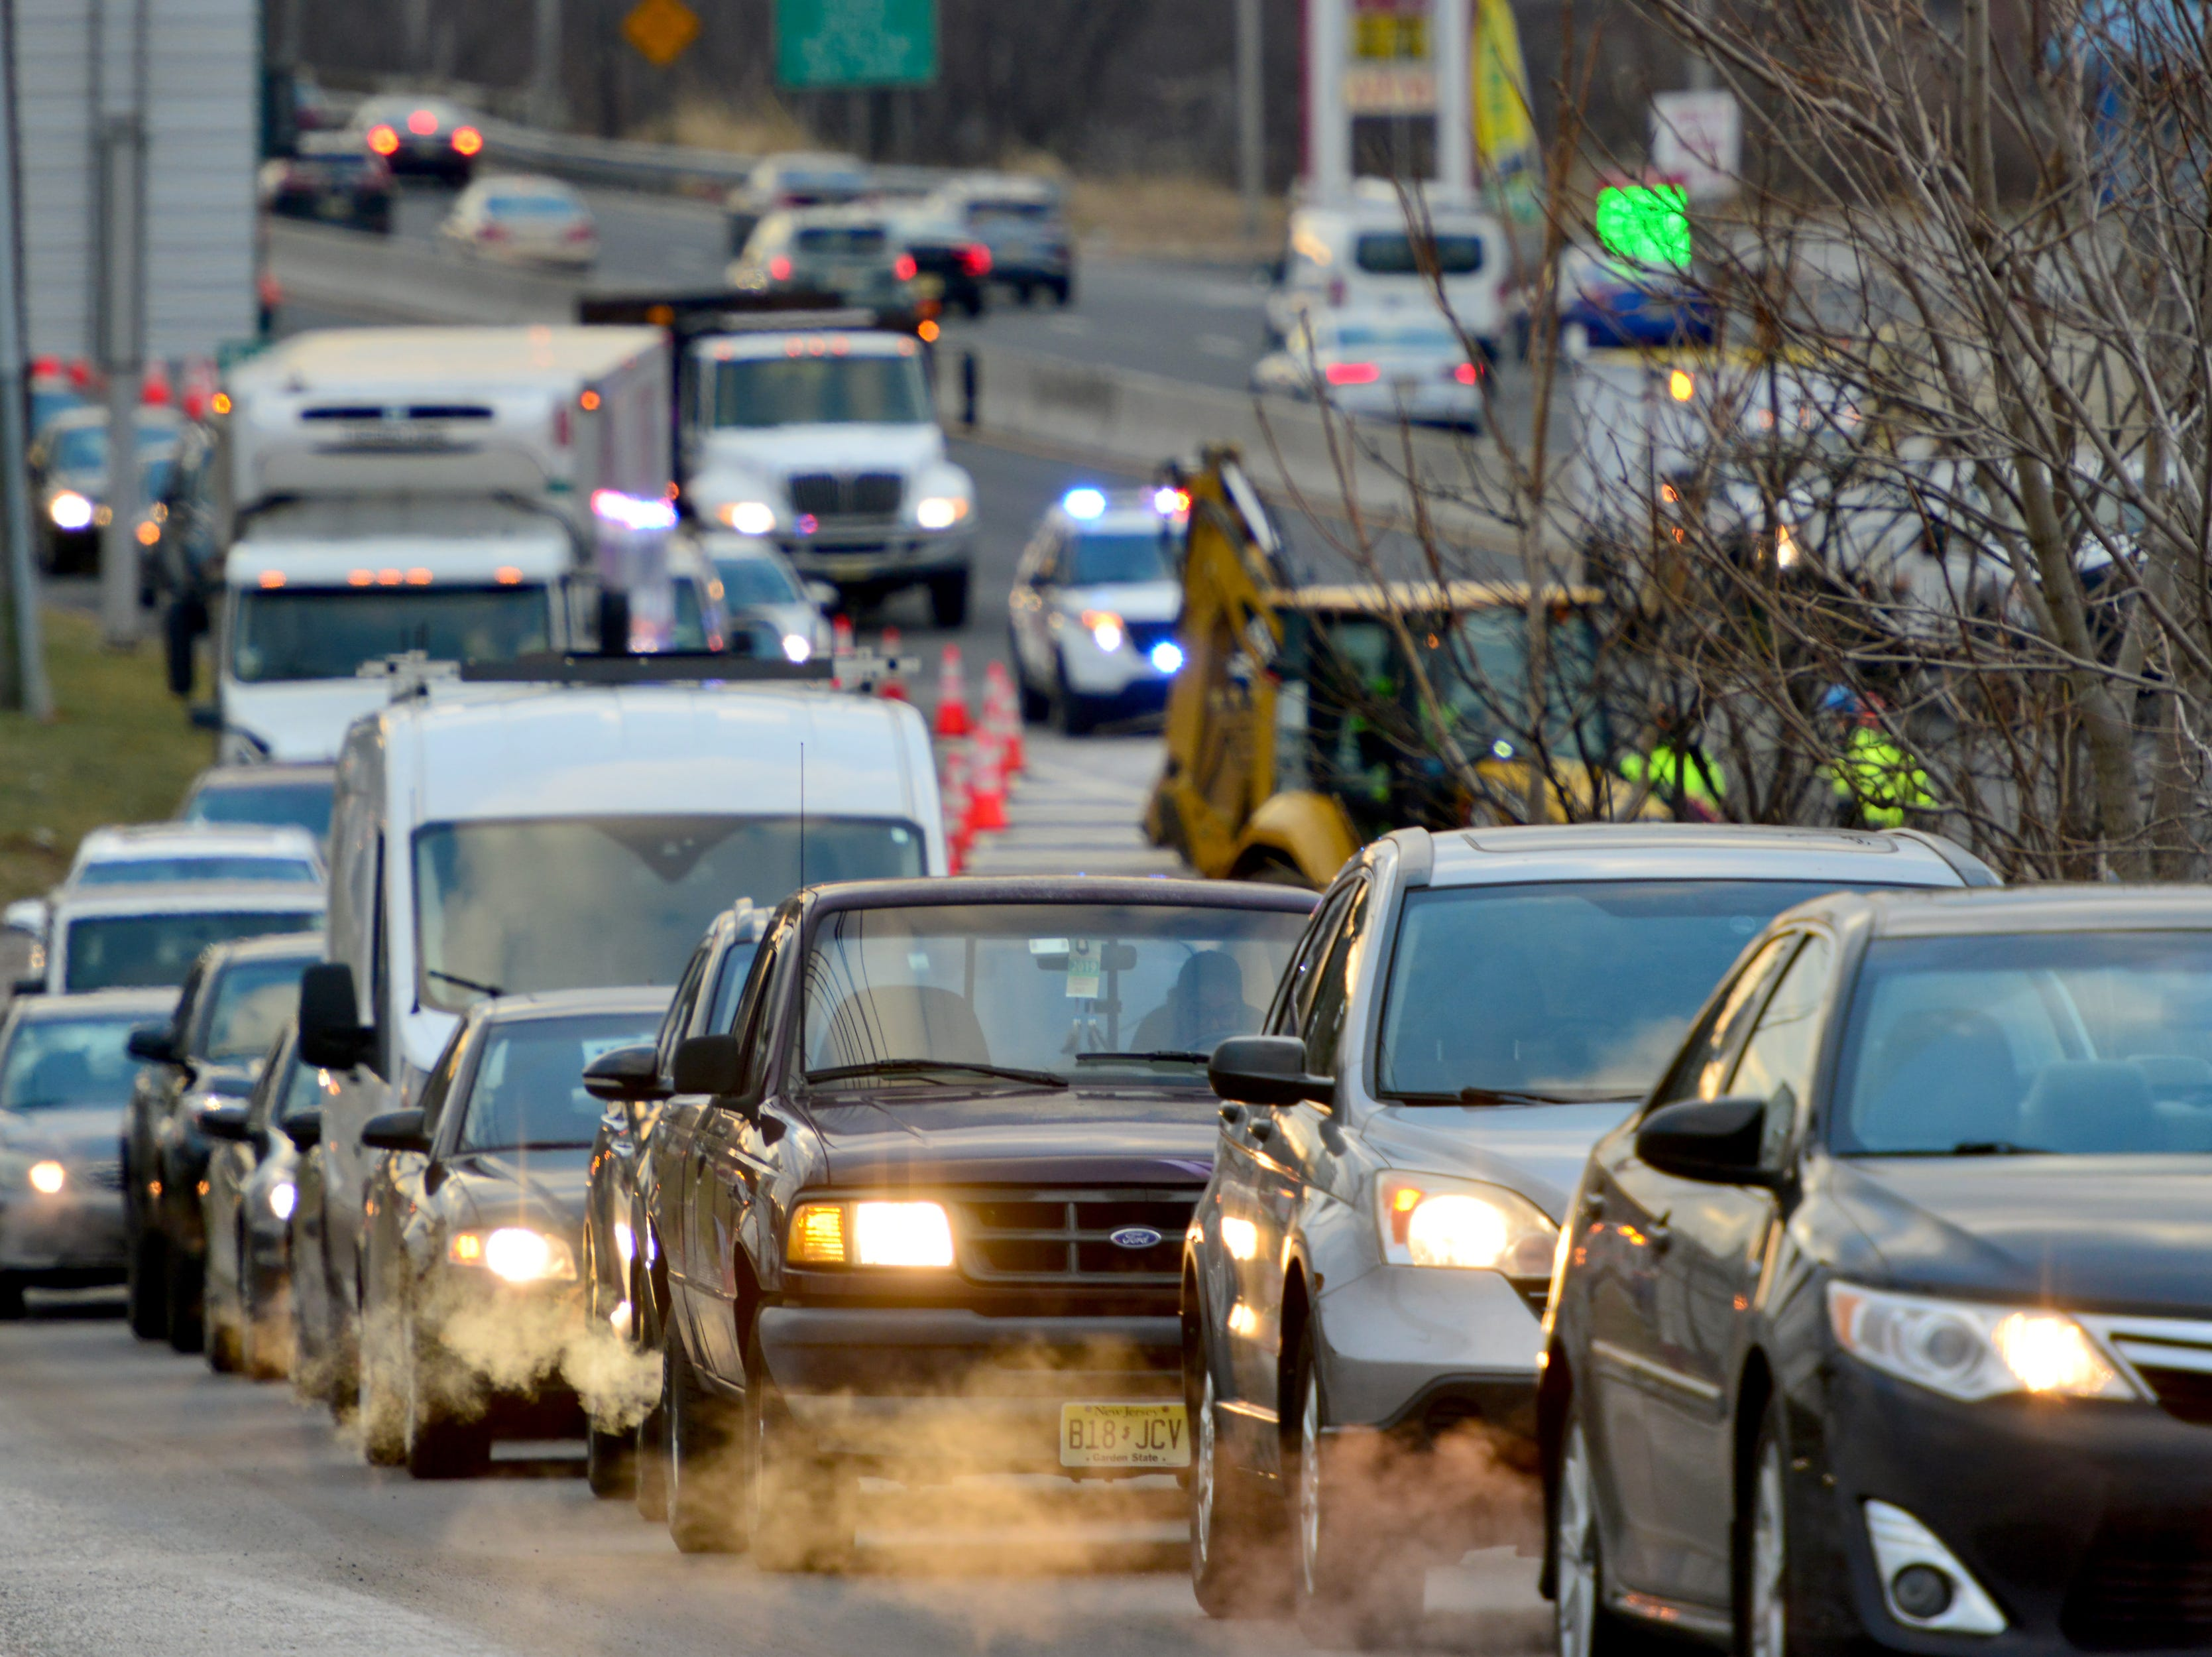 A water main break is causing huge traffic delays on Route 4 westbound in Hackensack, on Friday morning rush hour commute on January 25, 2019. All westbound traffic is being detoured north onto Hackensack Ave. Suez water company is on scene conducting repairs.